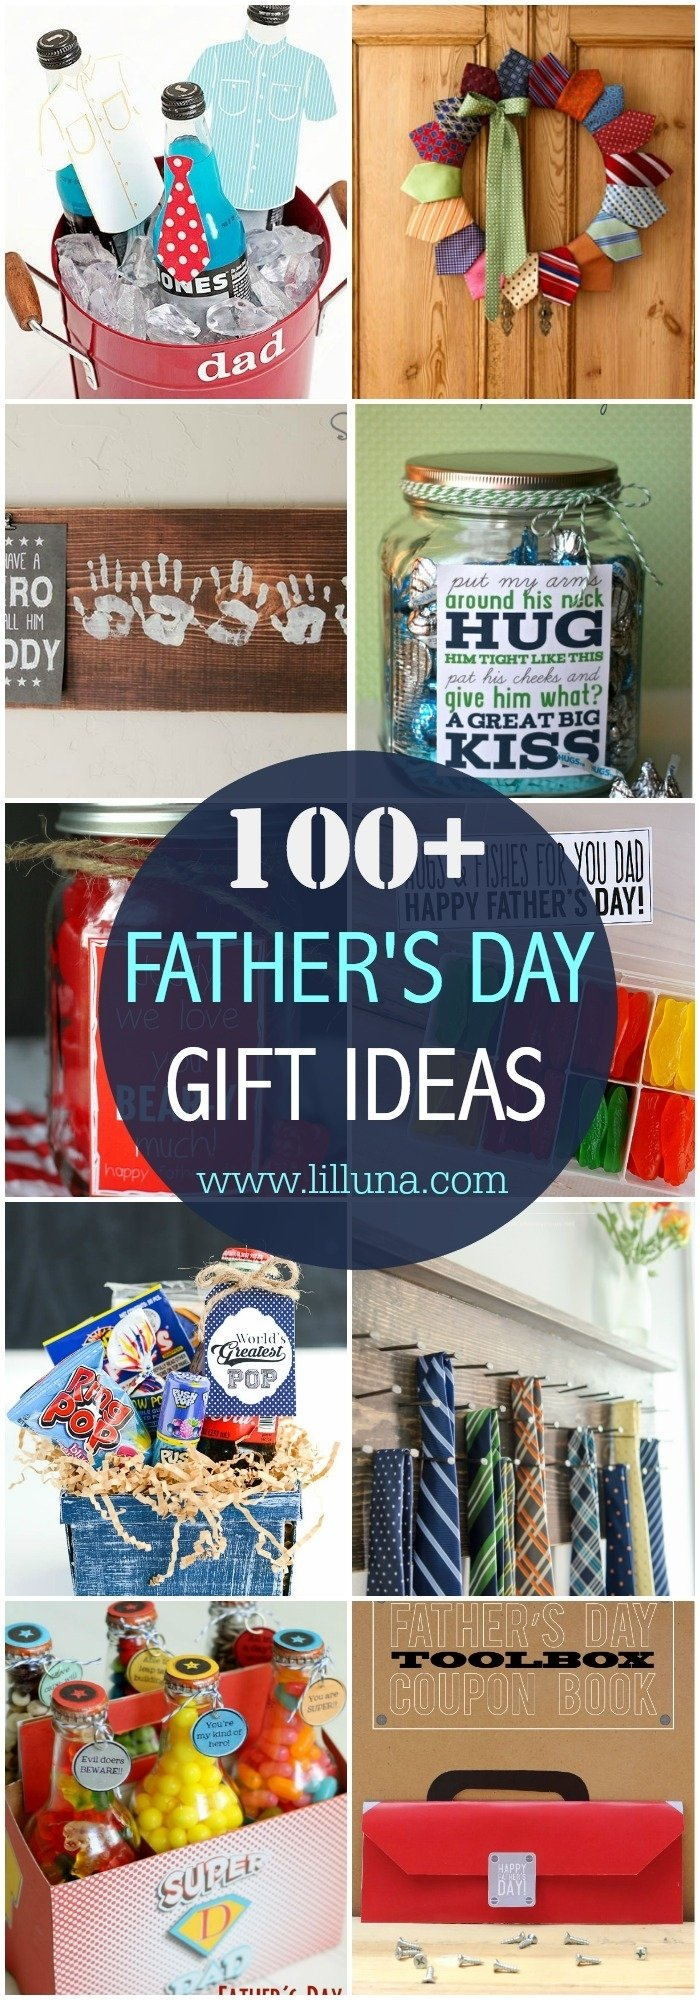 10 Elegant Homemade Gift Ideas For Dad fathers day gift ideas 5 2021